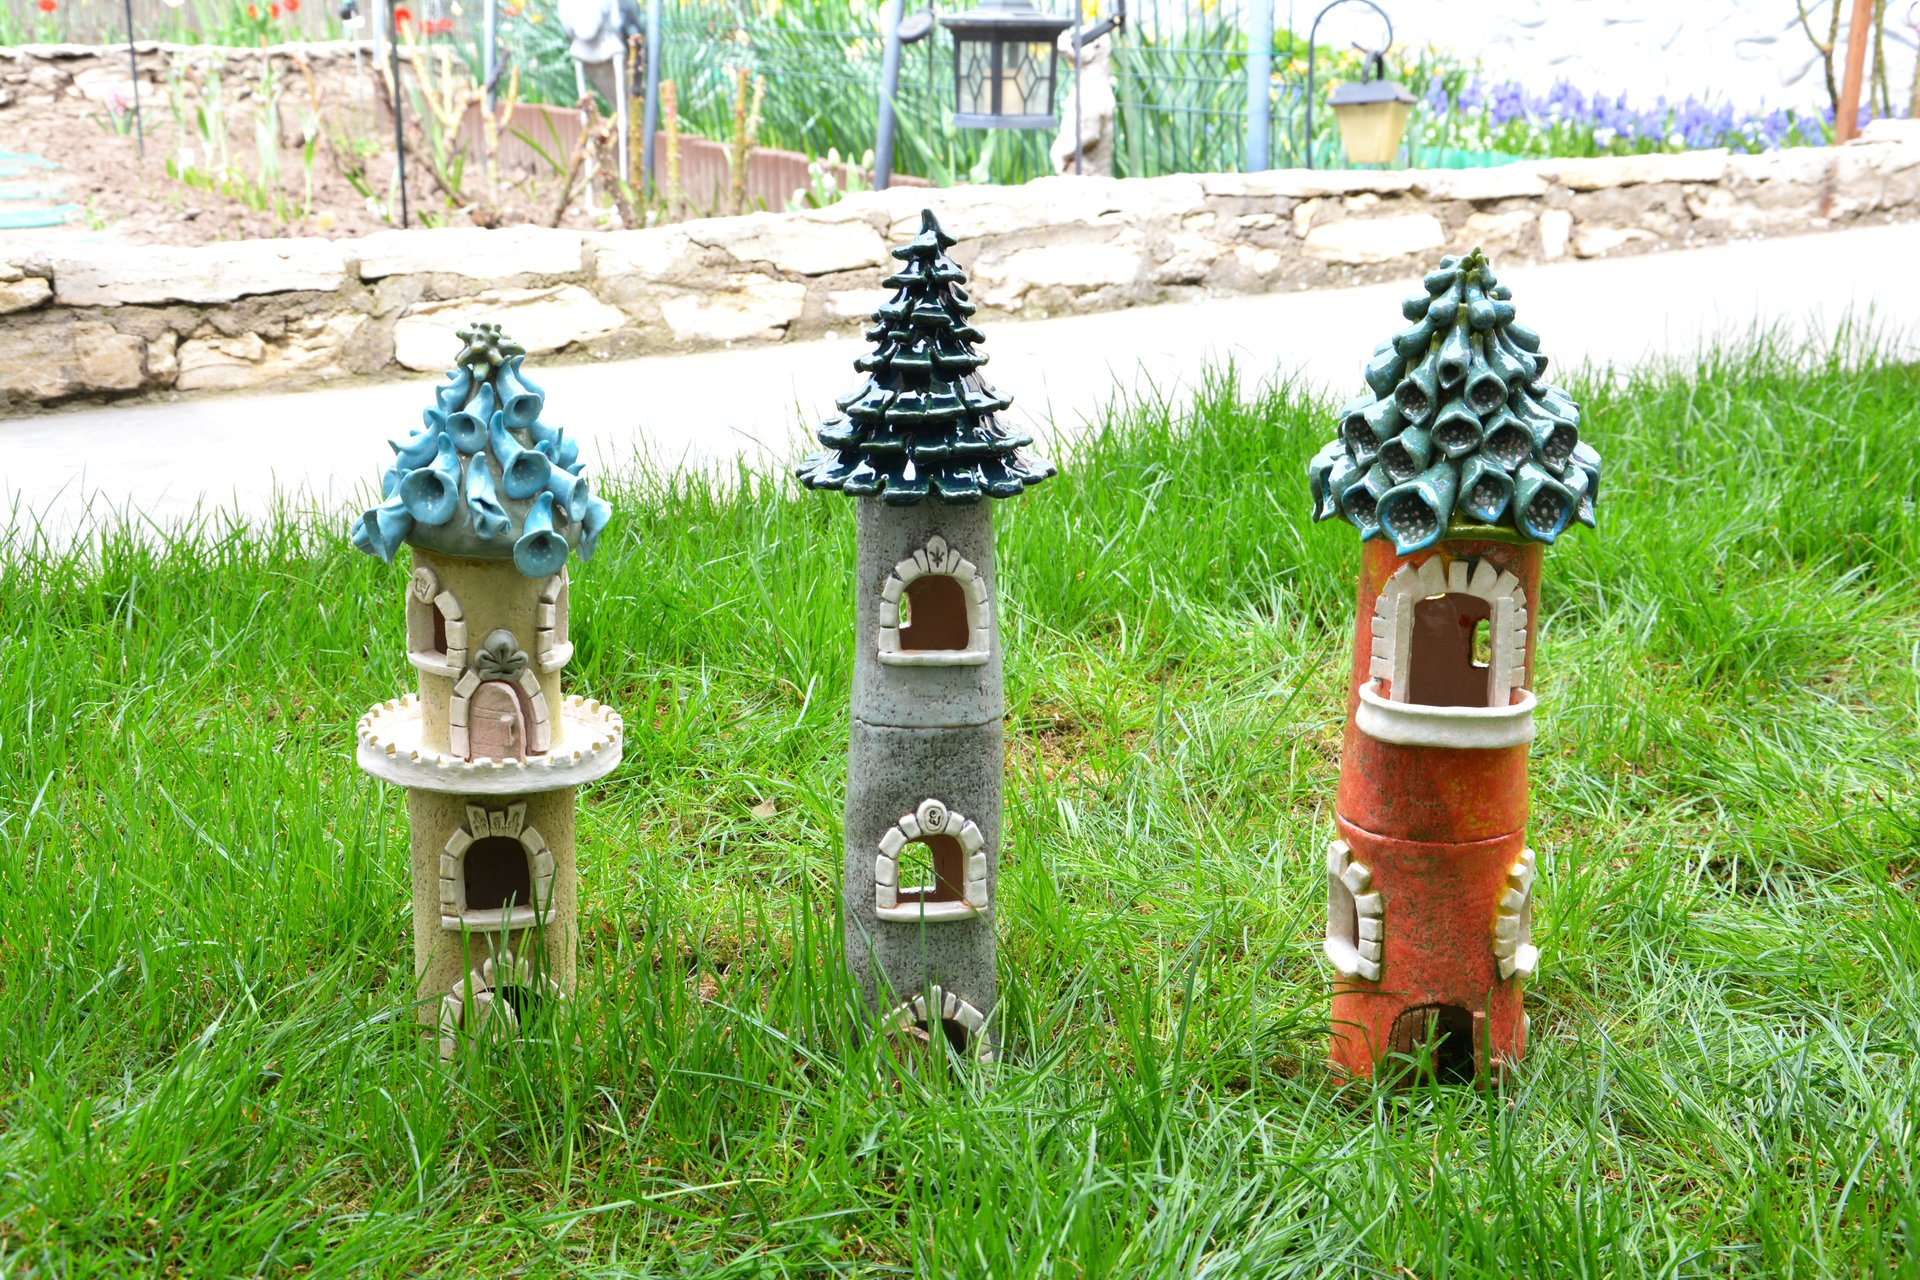 Flower Castels - Ceramic decorations for flowerbeds, lawns, height 39 cm - 44 cm, photo 2 of 2.